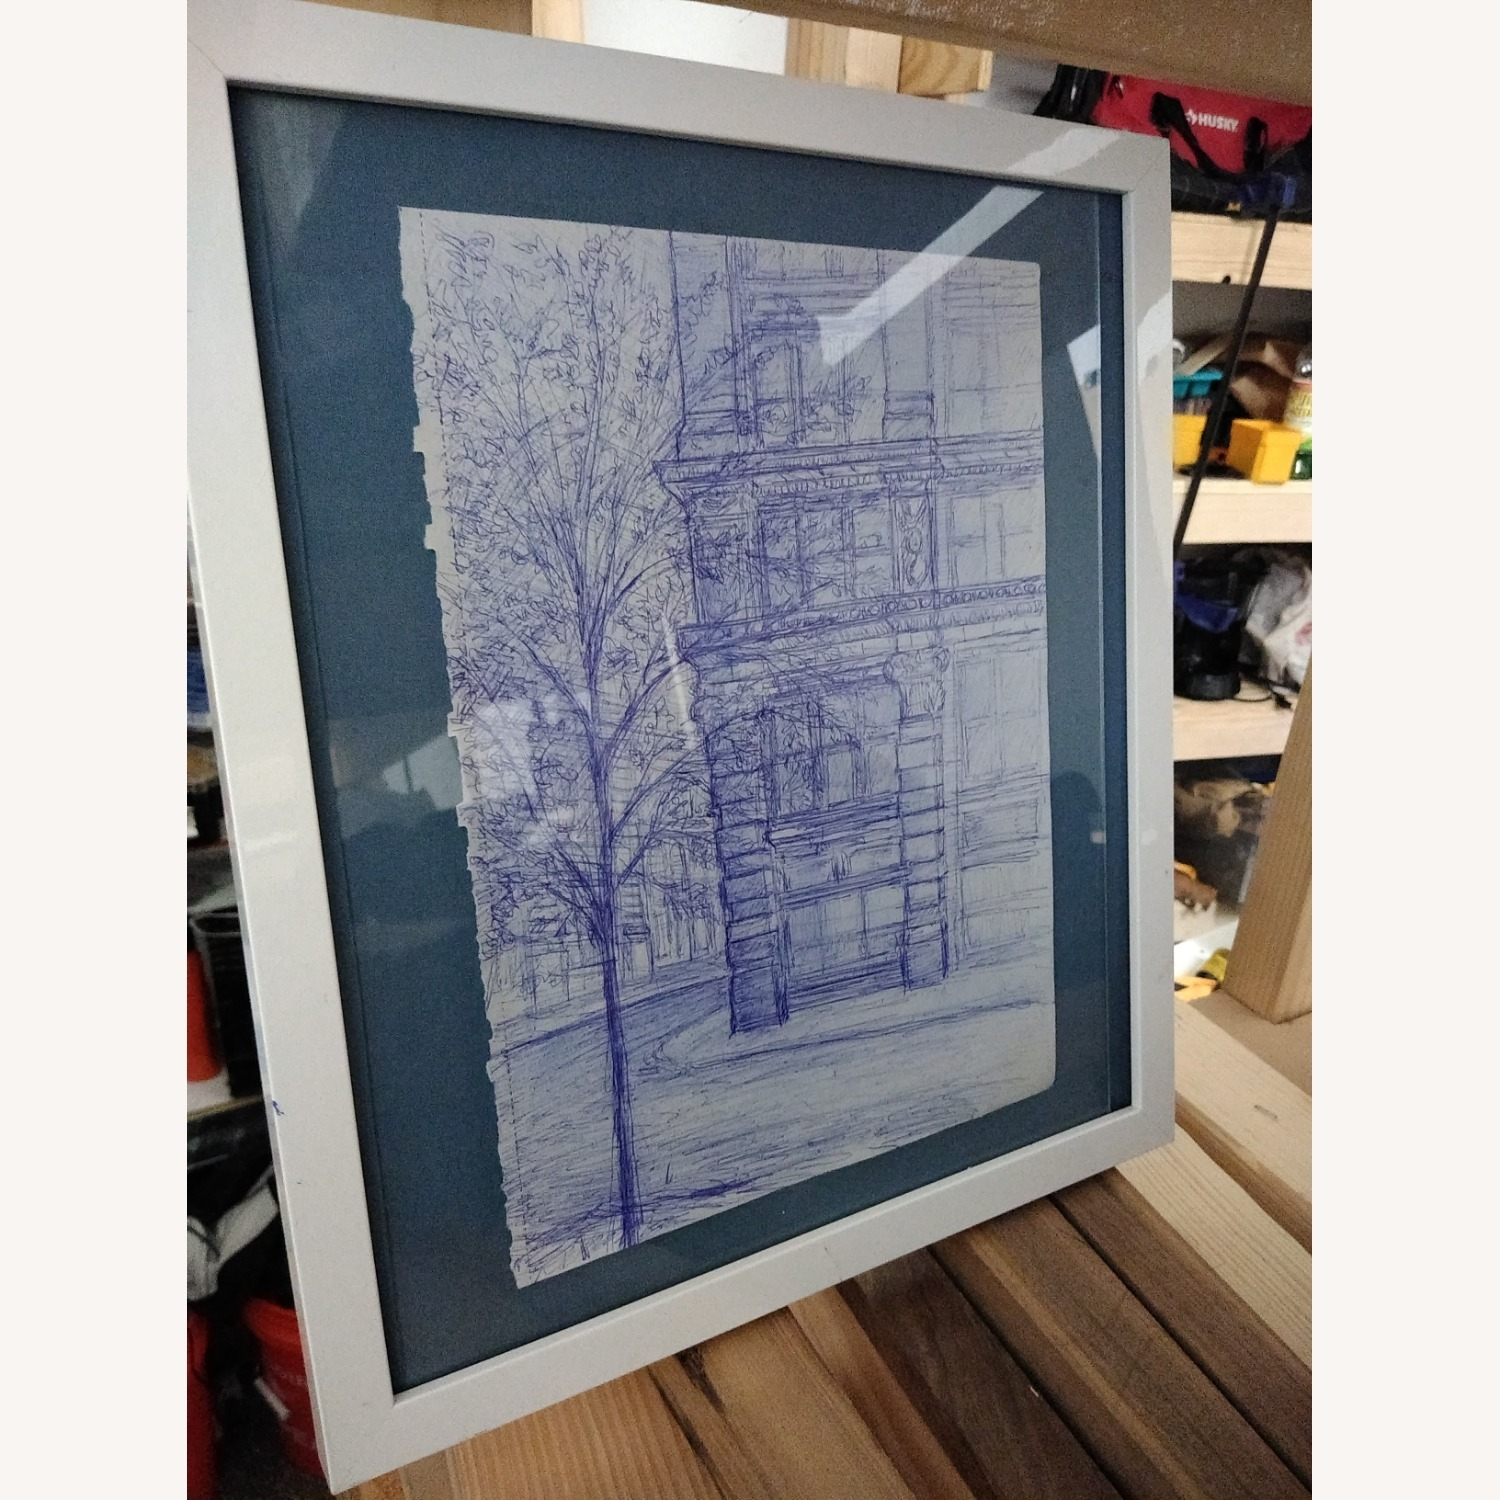 Drawing Restaurant Outdoor Dining View NY - image-20